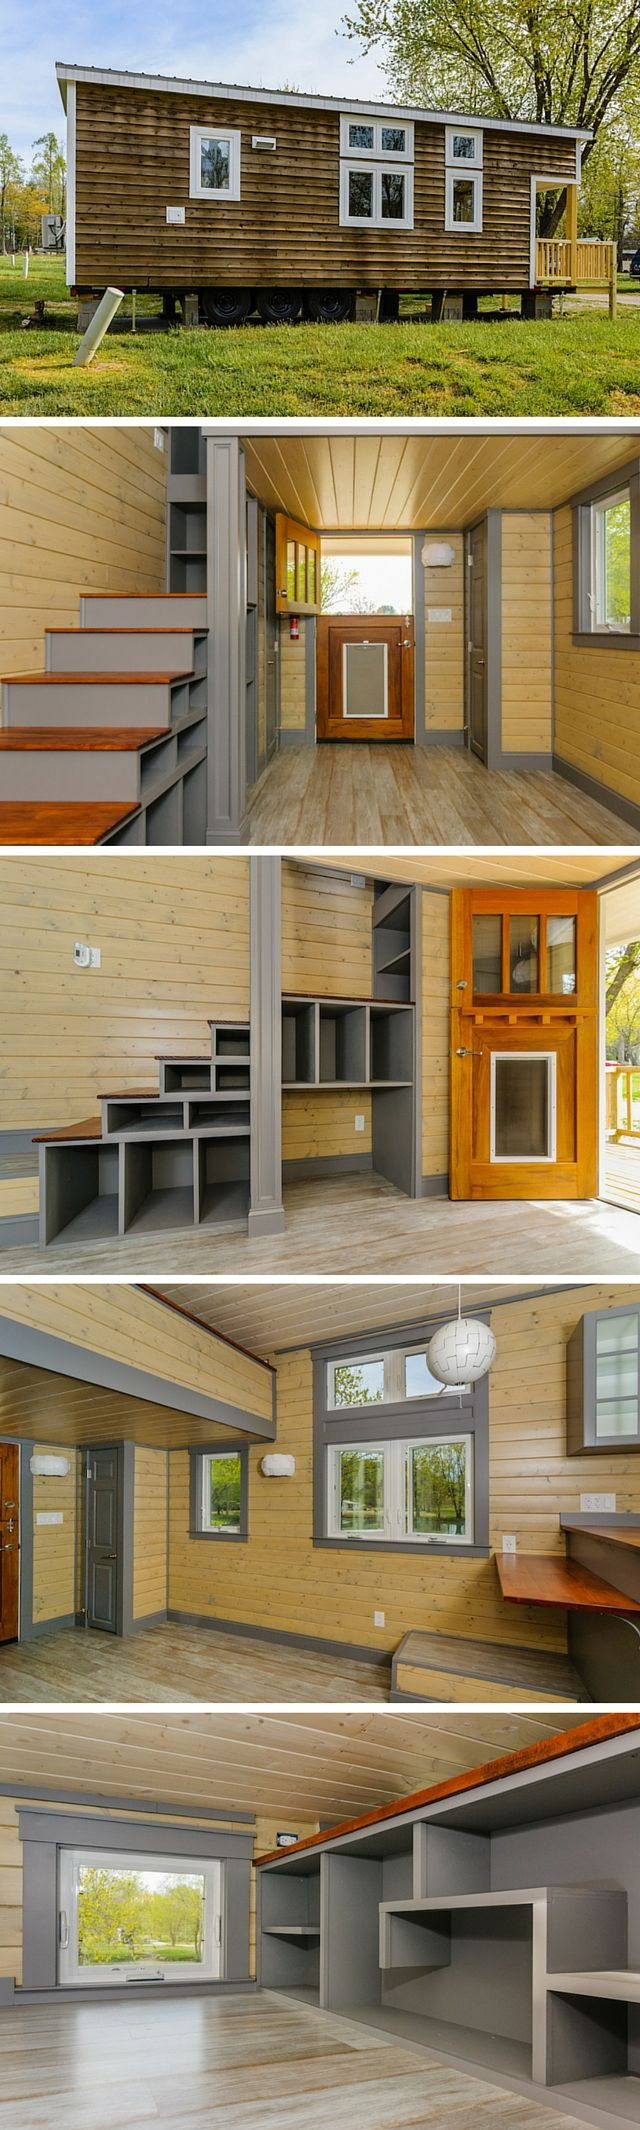 The Wynette from Wishbone Tiny Homes. A 10' by 30' tiny house with plenty of storage!